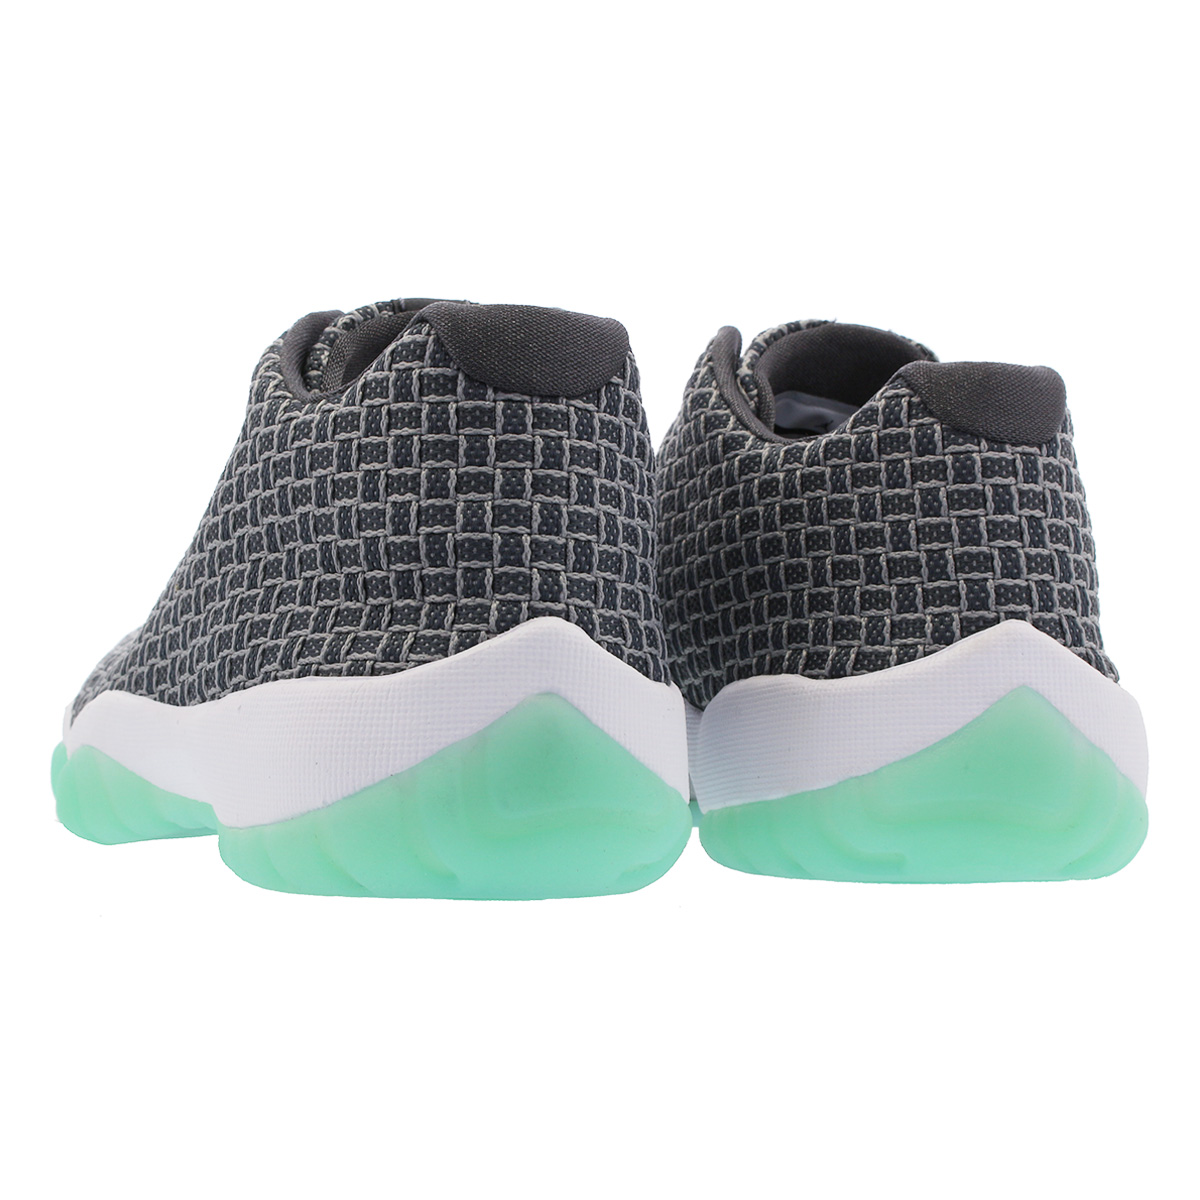 new style 0881b 4476e netherlands nike air jordan future low nike air jordan future low wolf grey  emerald rise white